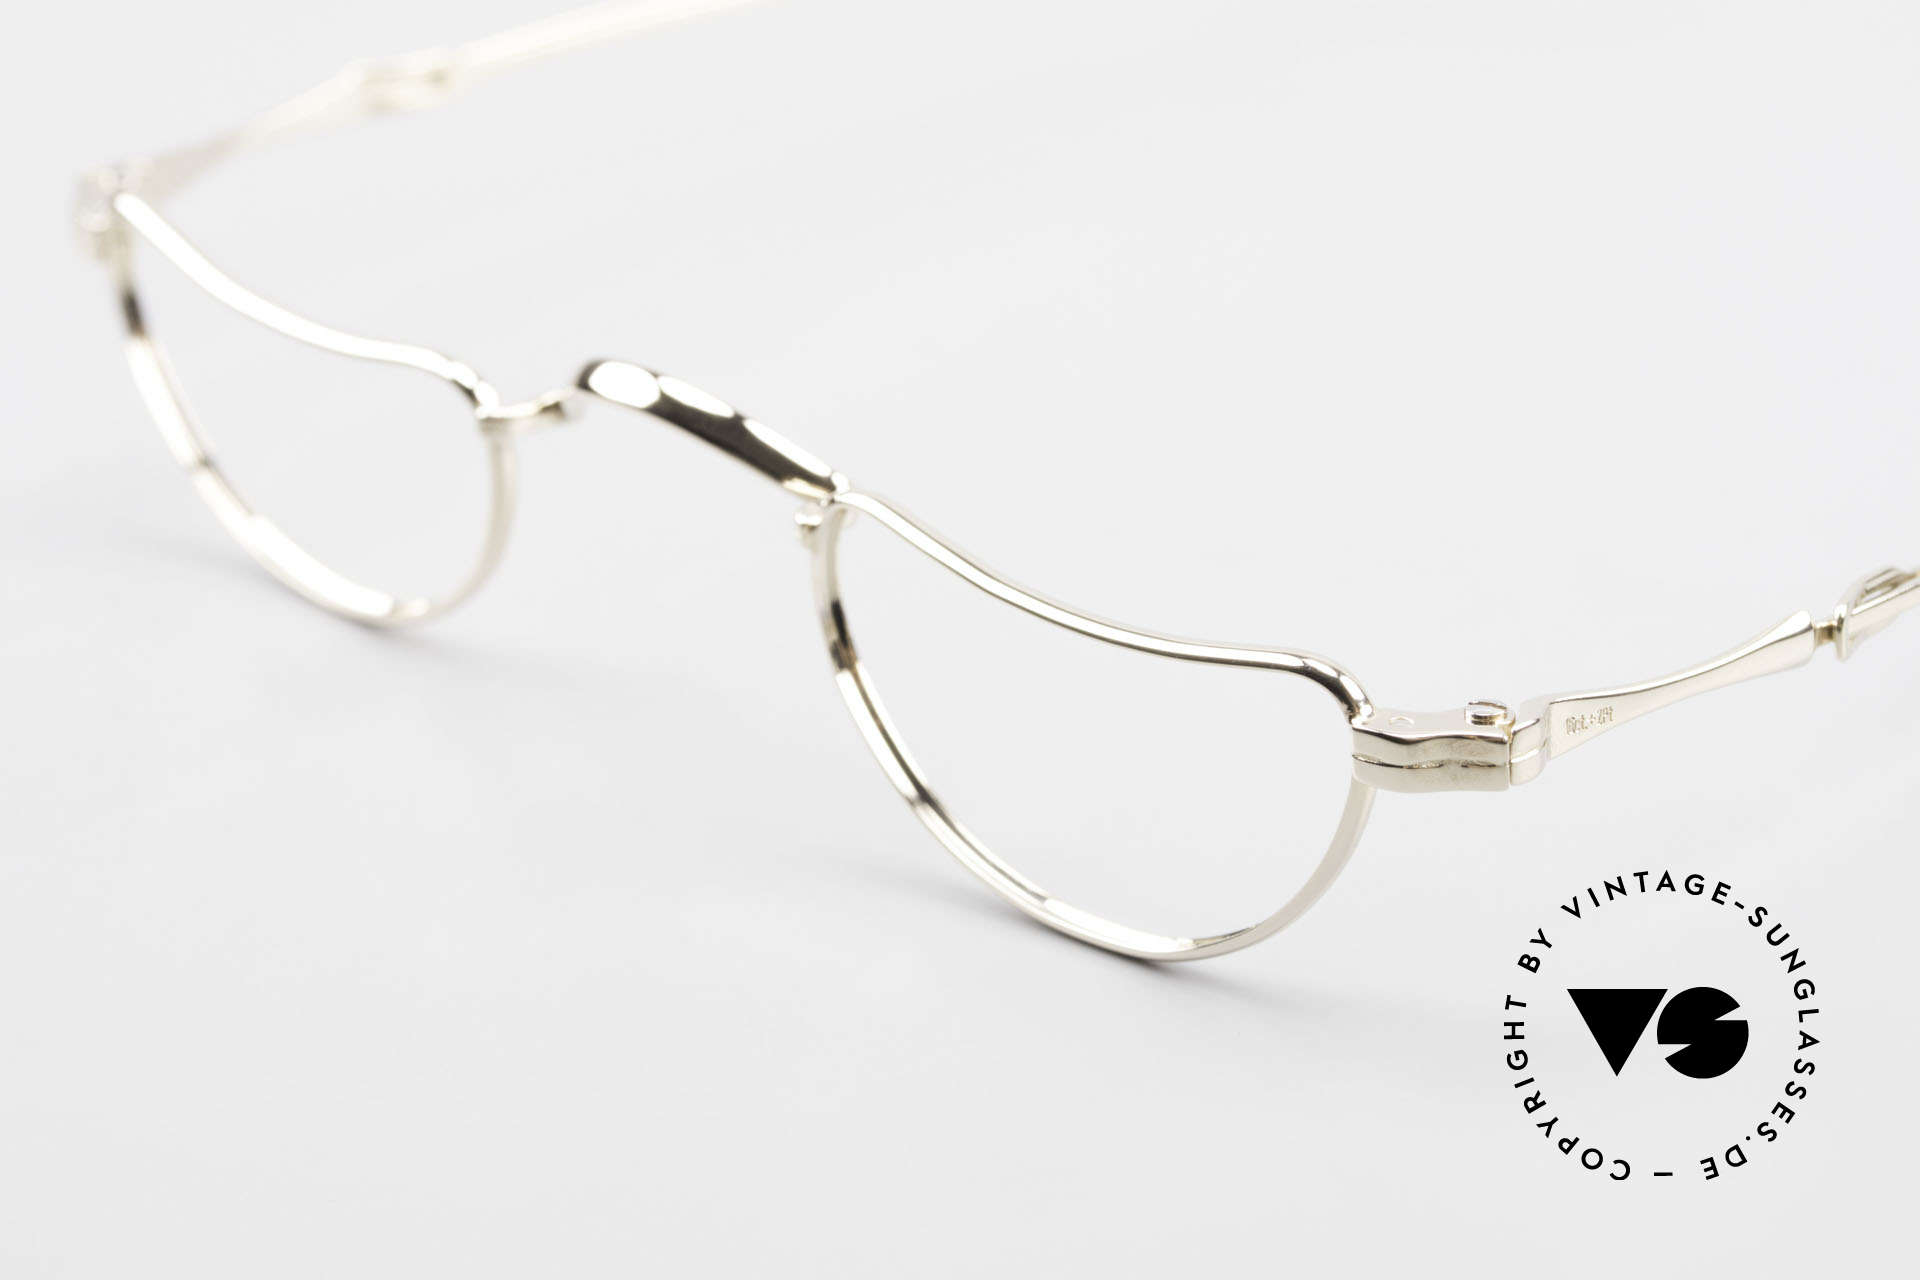 Lunor Goldbrille Solid Gold Glasses 16ct Frame, pure LUXURY eyeglasses with legendary slide temples, Made for Men and Women